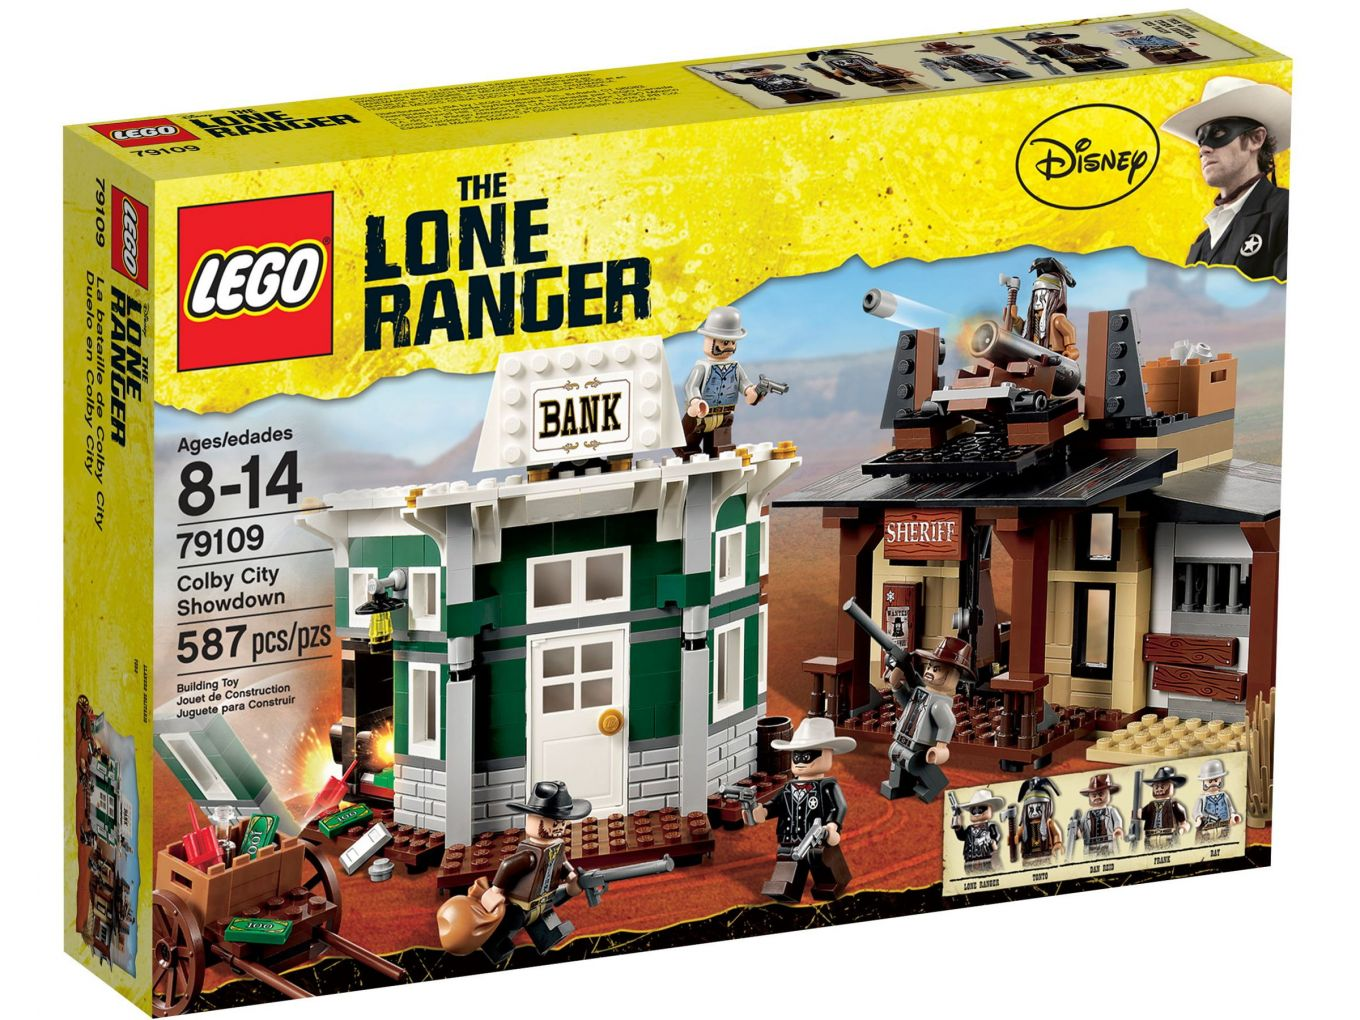 LEGO 79109 Colby City duel